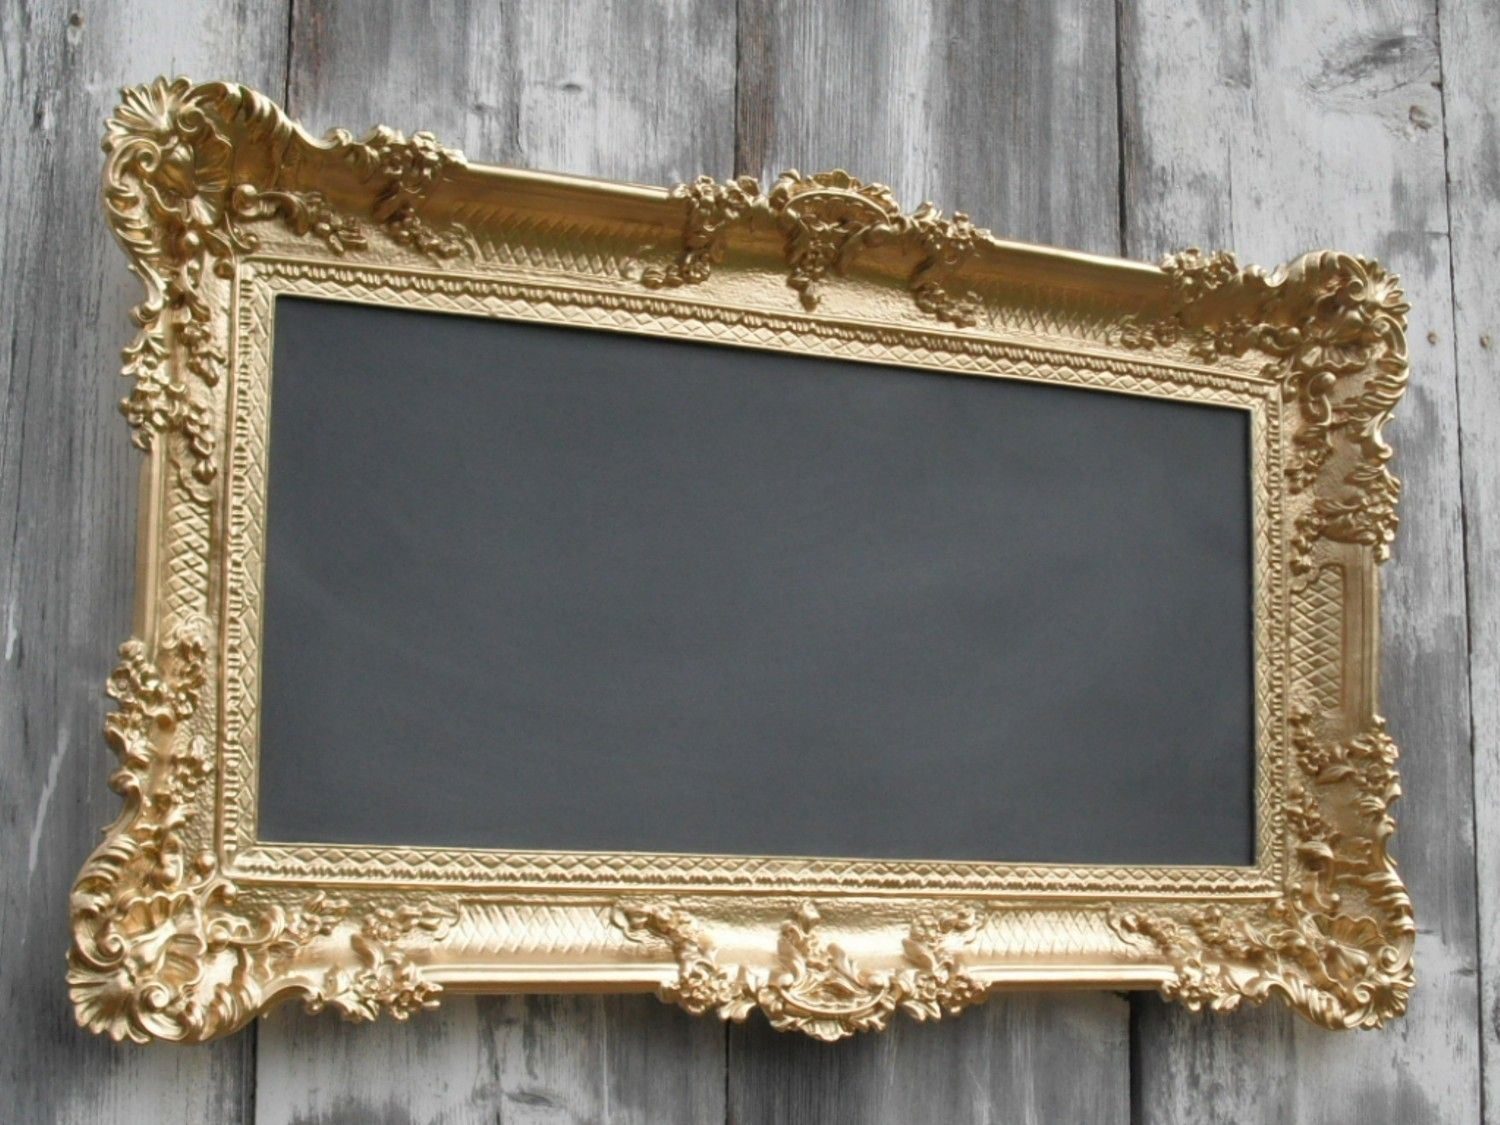 HOLLYWOOD REGENGY WEDDING Chalkboard Ornate Baroque French Country ...